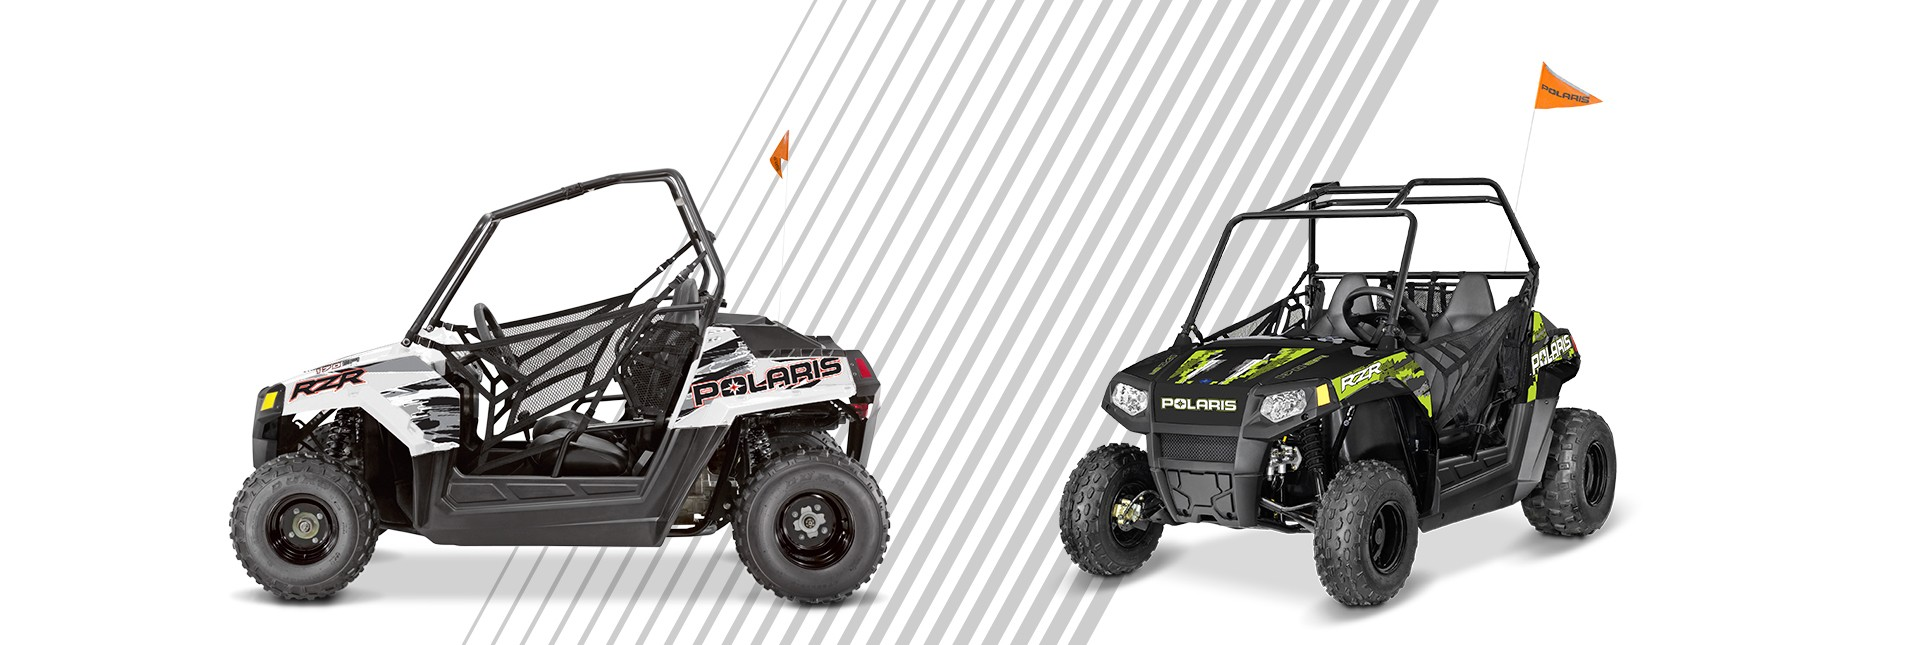 front and side view of youth RZR vehicles